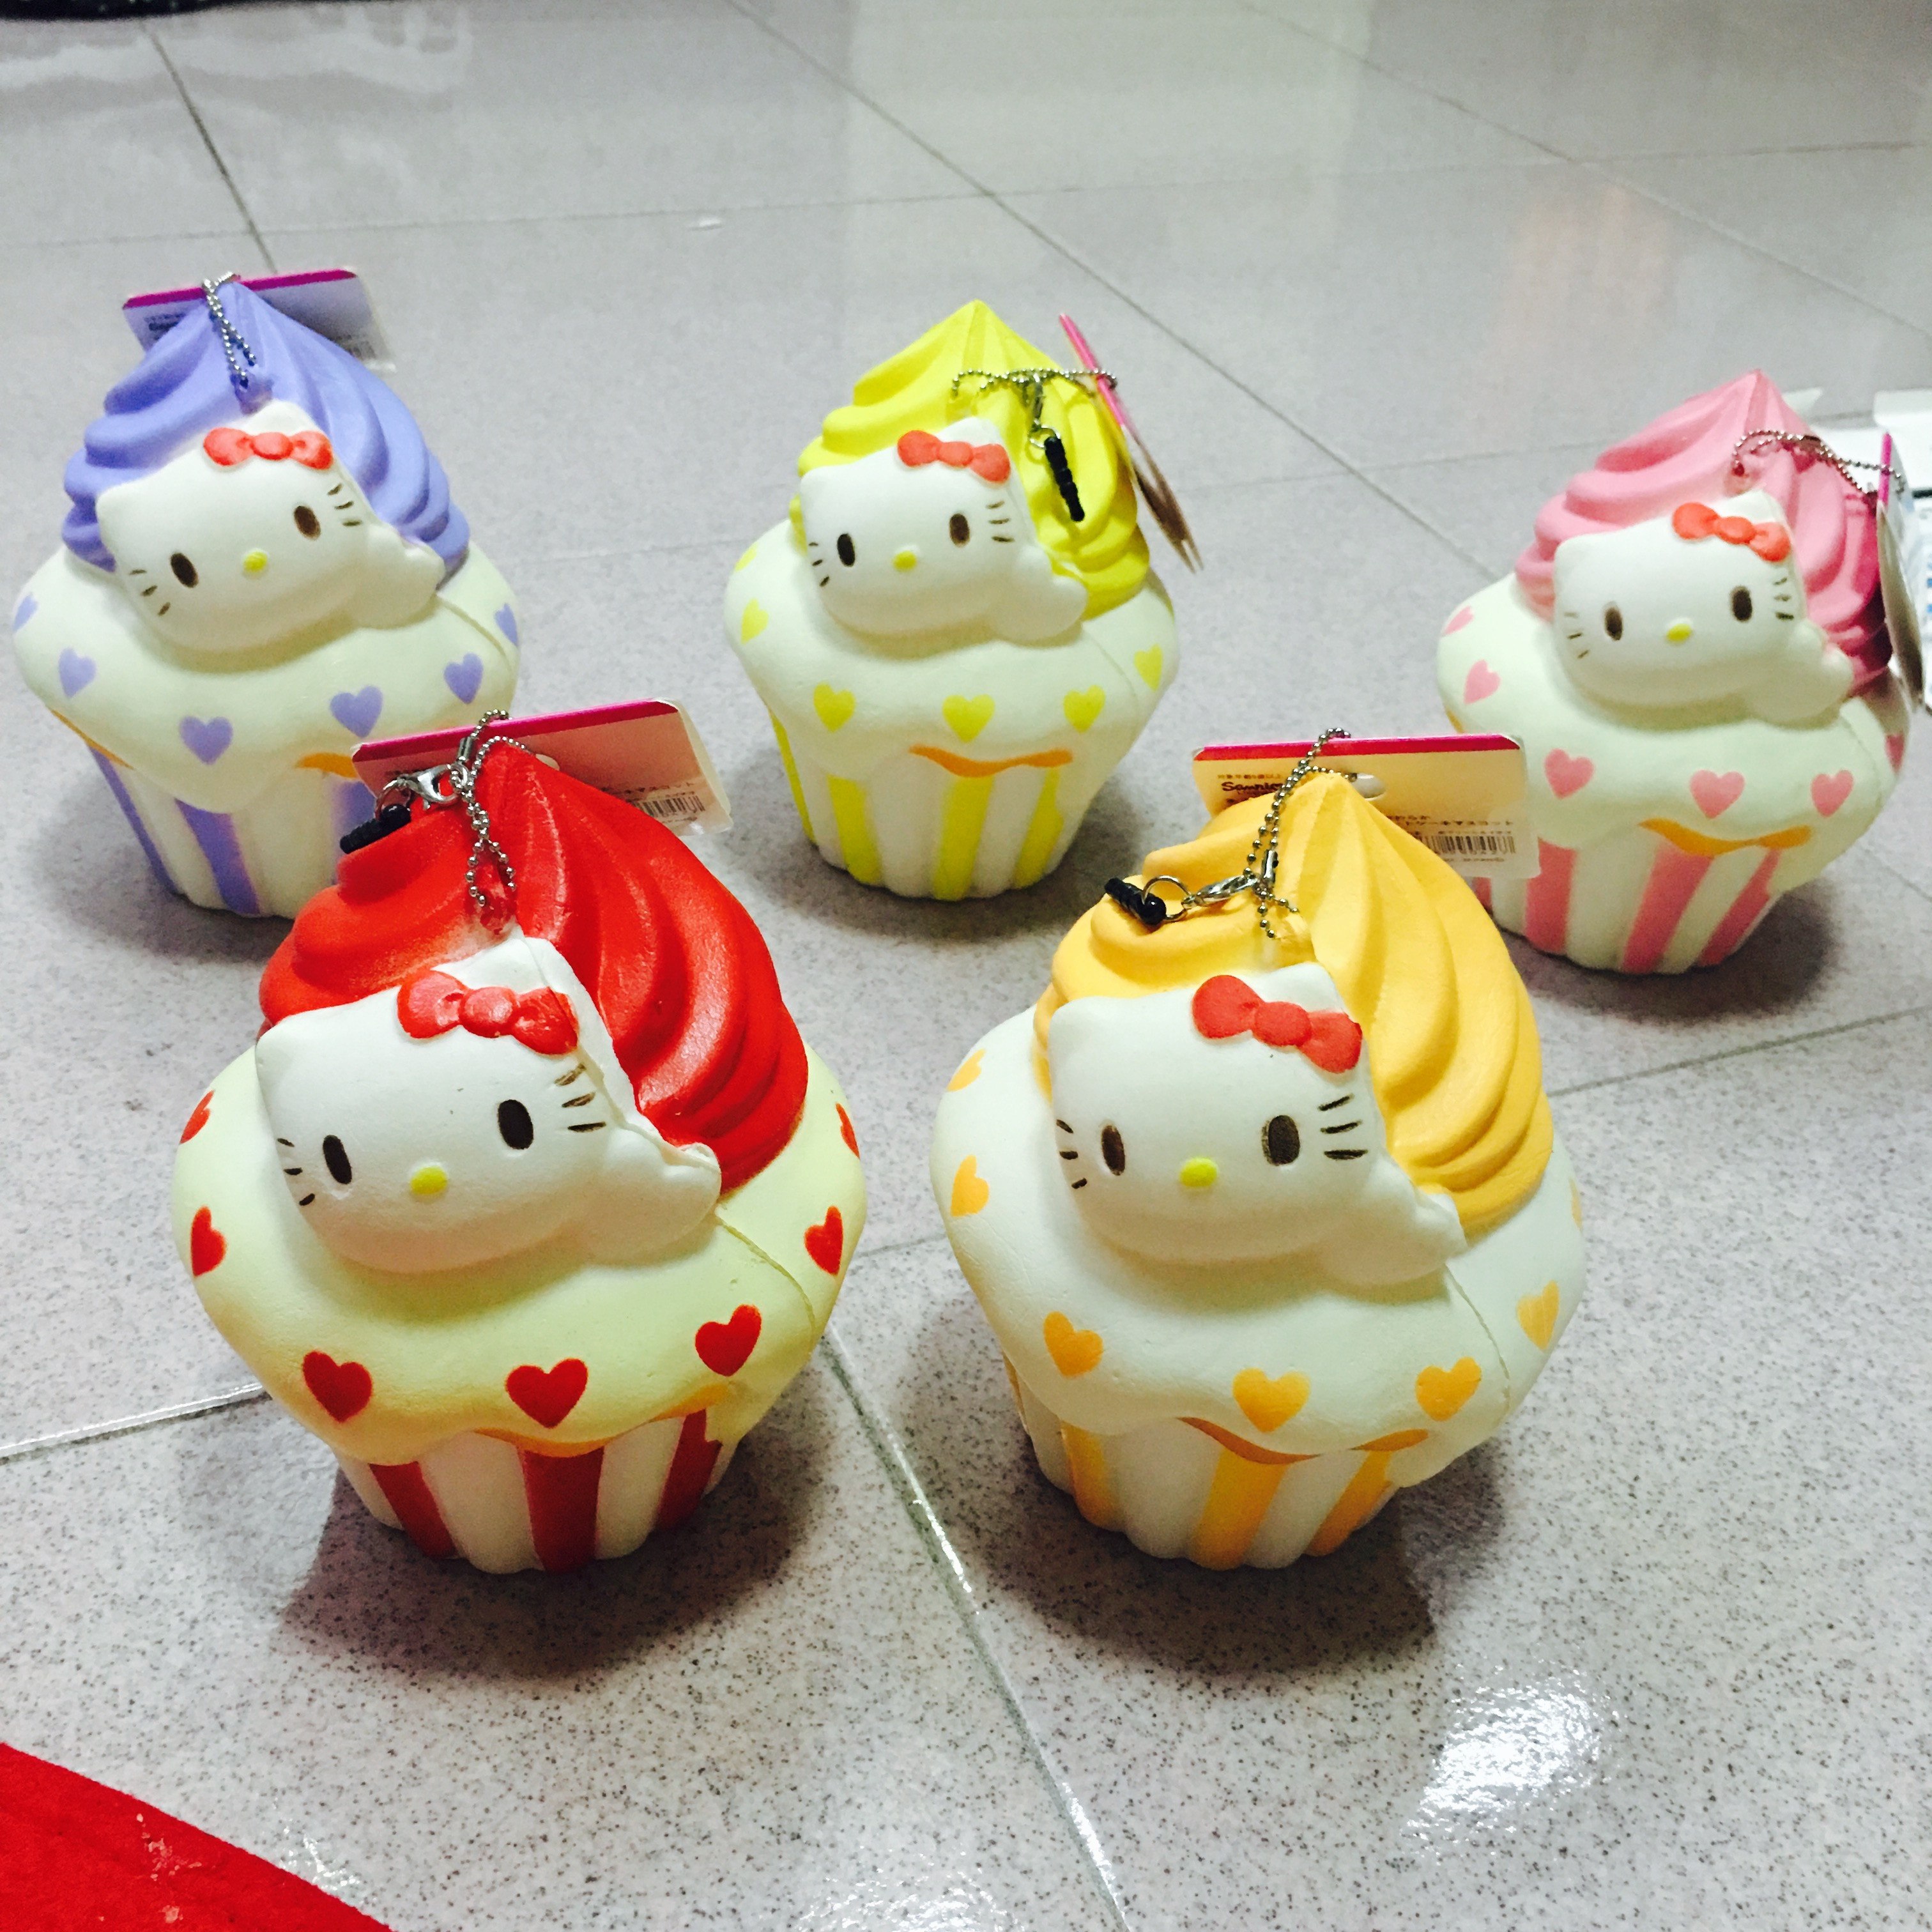 Squishy Collection Hello Kitty : ~SquishyStuff~ HUGE Cute Hello Kitty Colorful Cupcake Squishy Mascot Online Store Powered by ...